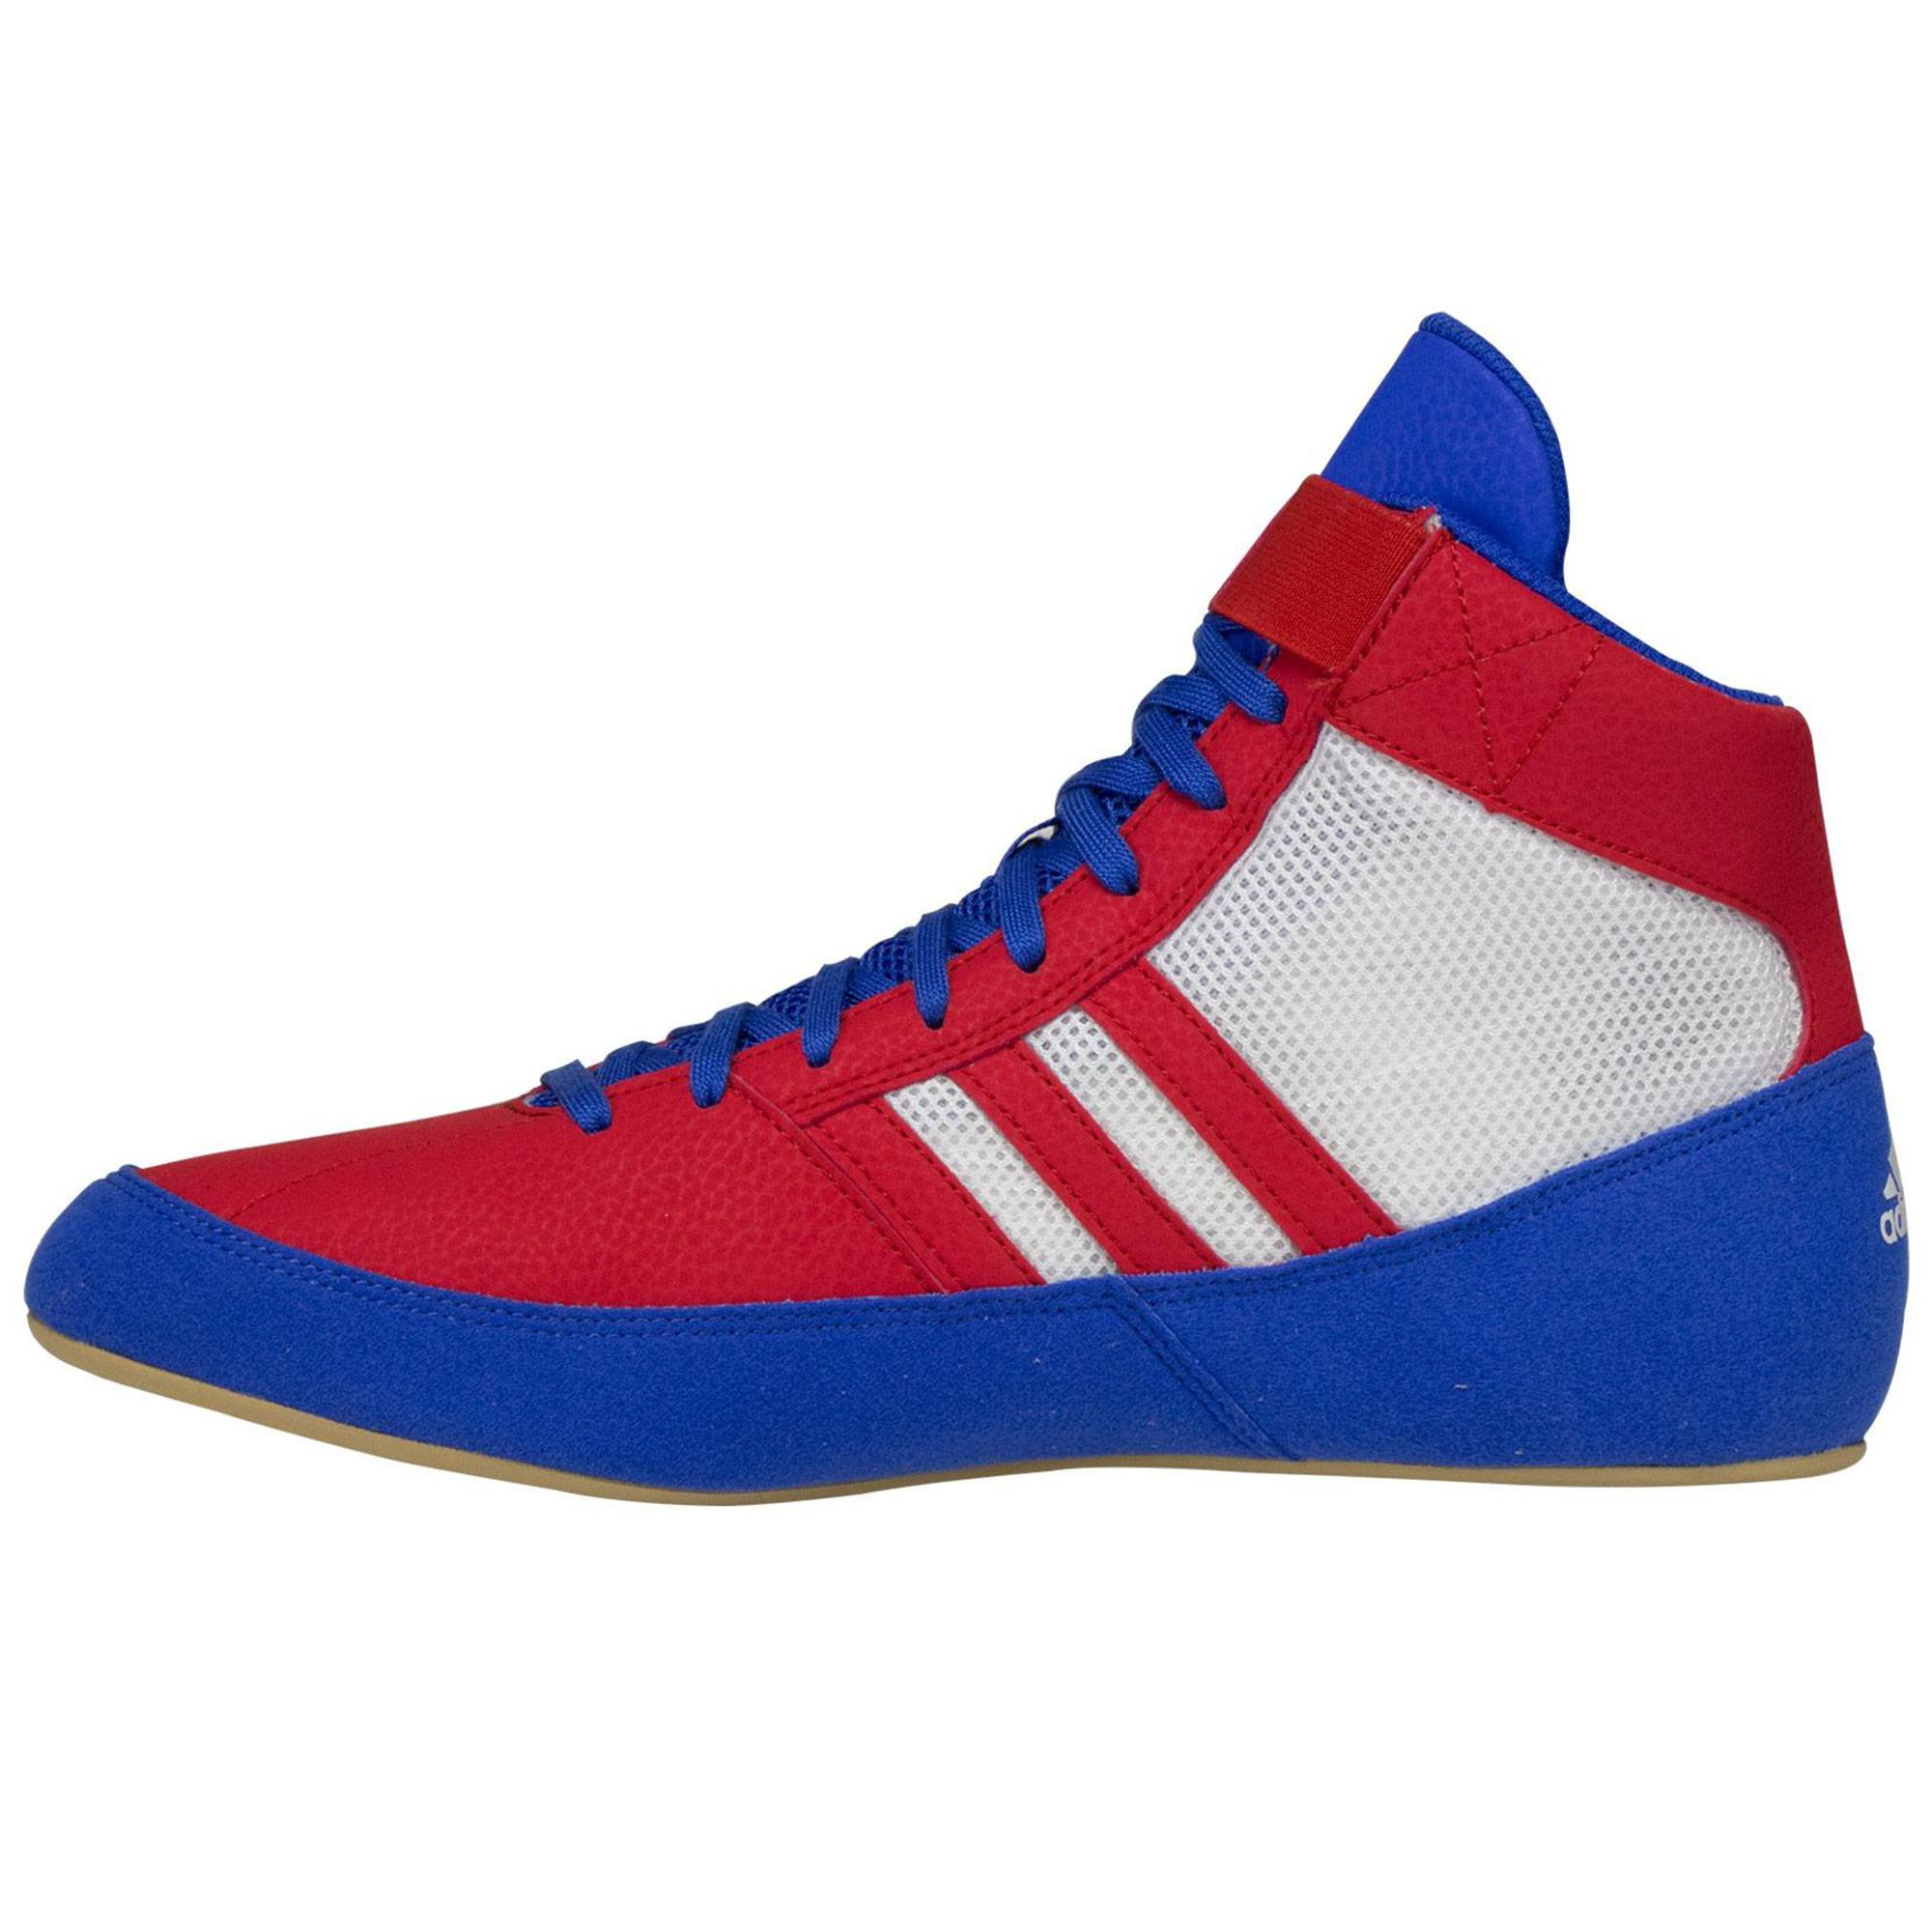 ebde610dd27882 ... Laced Youth Hvc 2 Blue Red White backAdidas Laced Youth Hvc 2 Blue Red  White topAdidas Laced Youth Hvc 2 Blue Red White sole